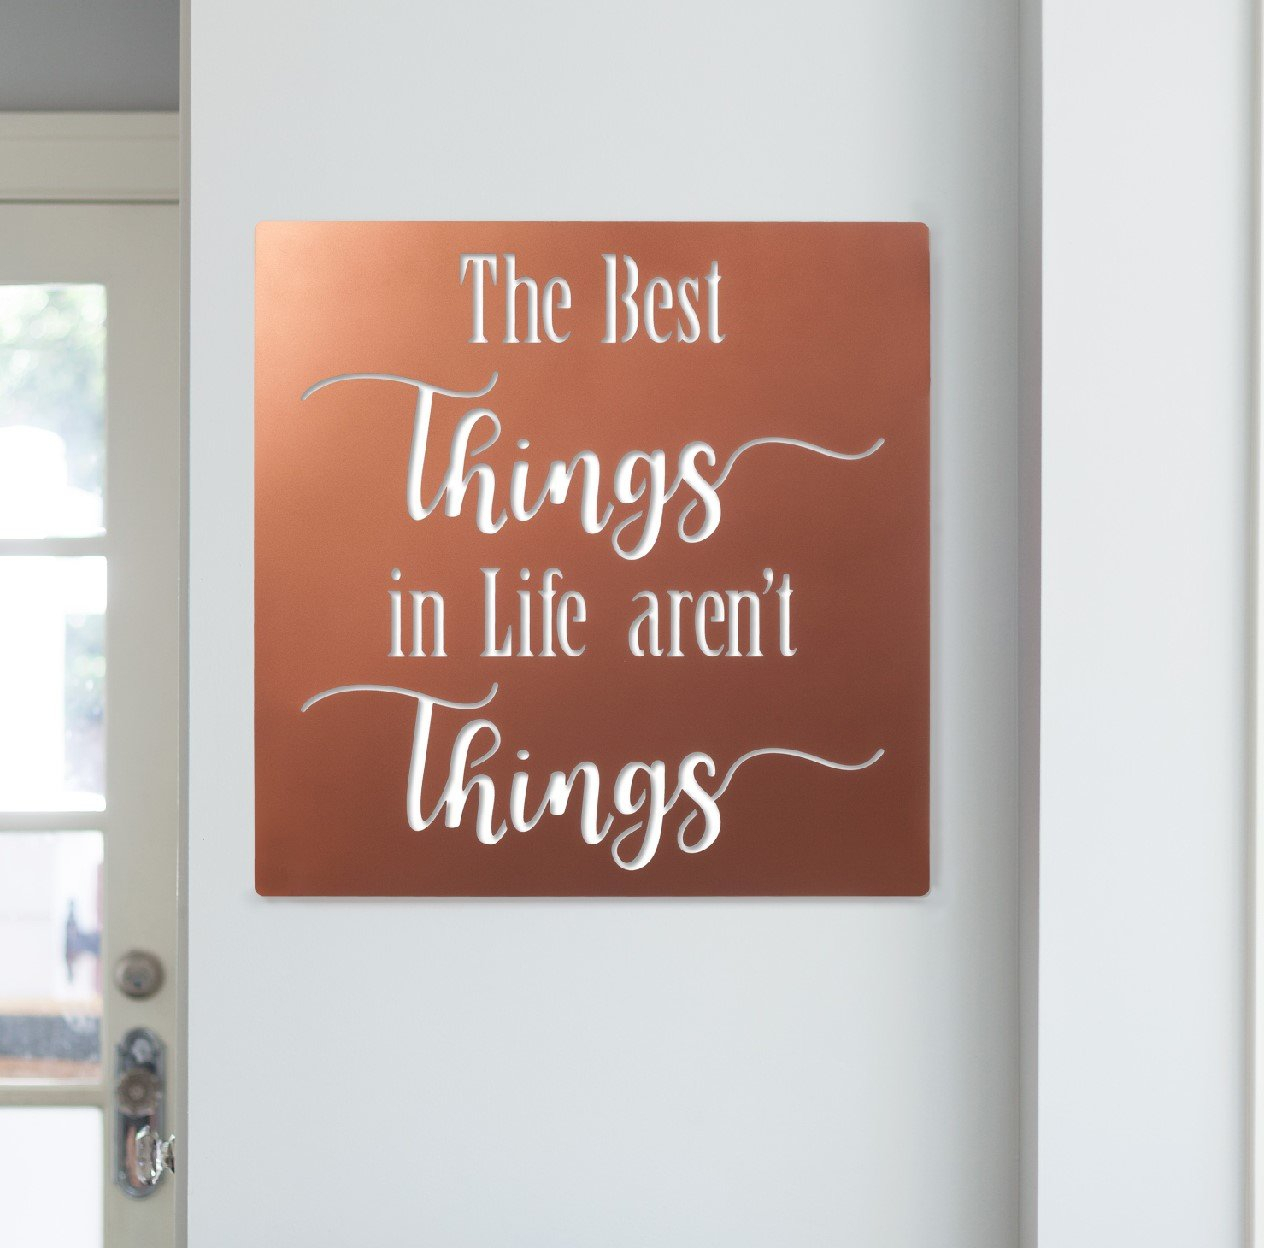 Details About Winston Porter Inspirational Sign Metal Laser Cut Wall Decor Inside Metal Wall Decor By Winston Porter (Gallery 8 of 30)